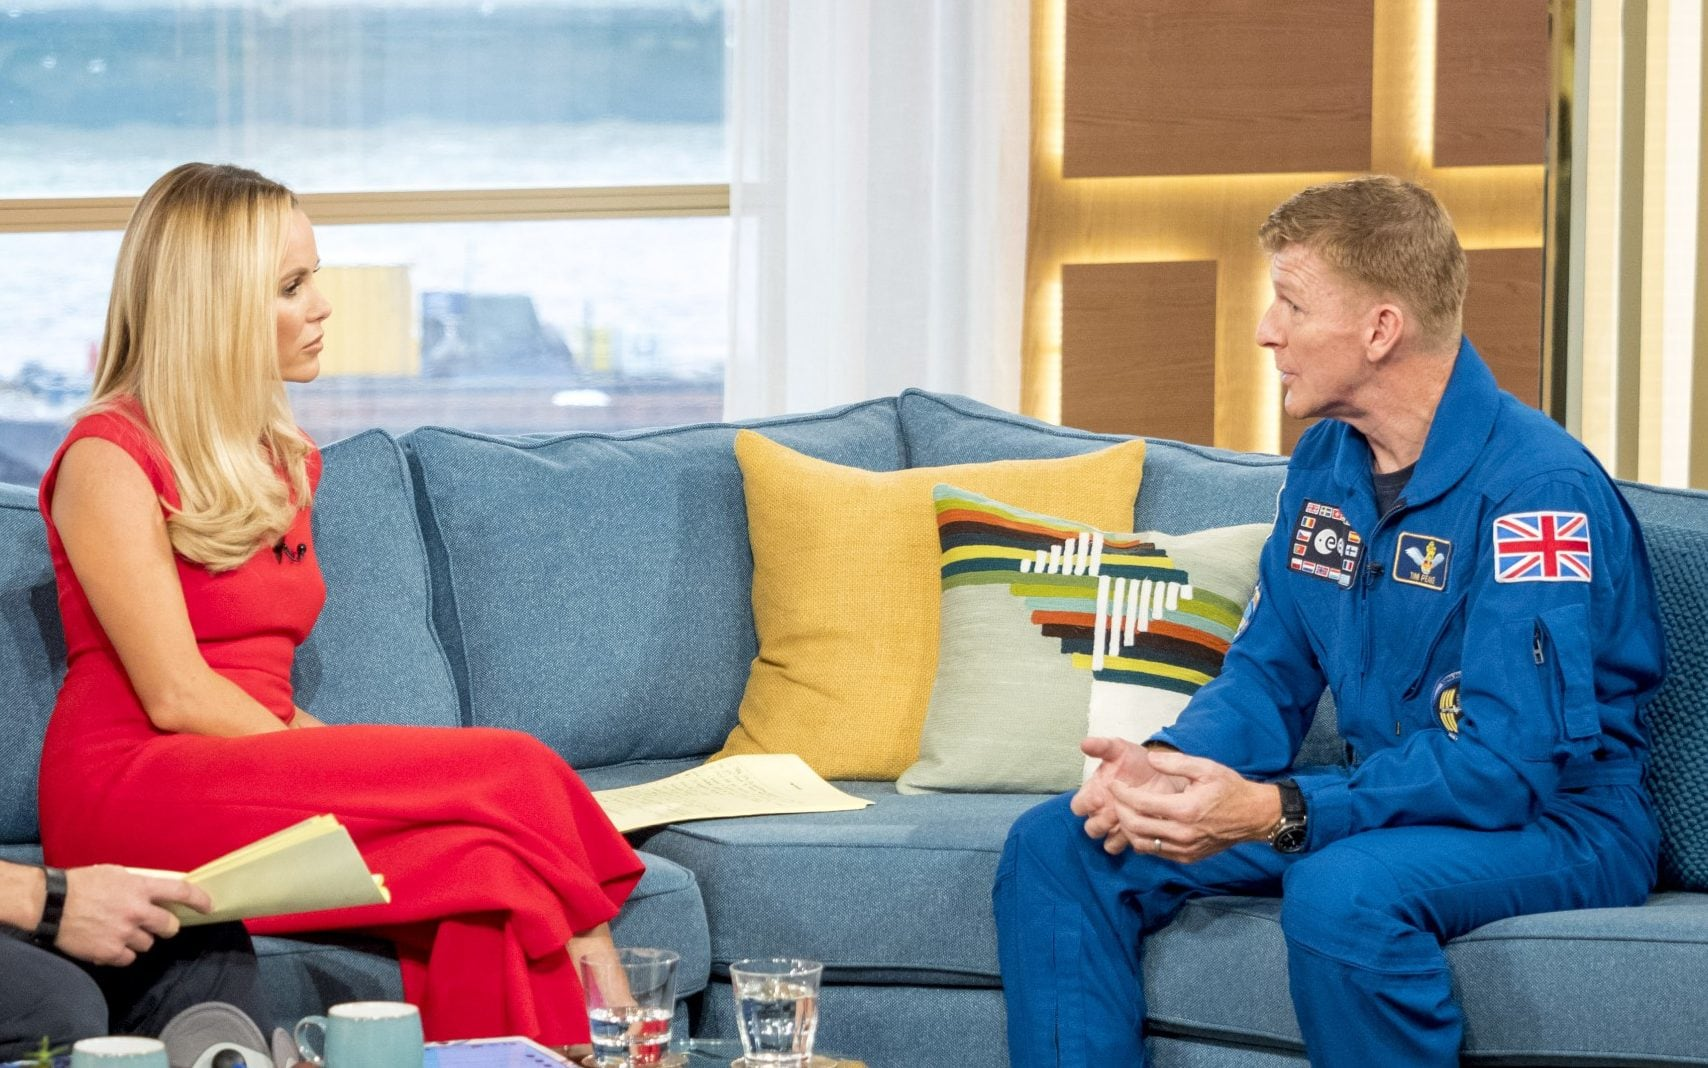 RT @jonnohopkins: Why does Tim Peake wear a space suit everywhere except space? https://t.co/C2yhtwxwBX